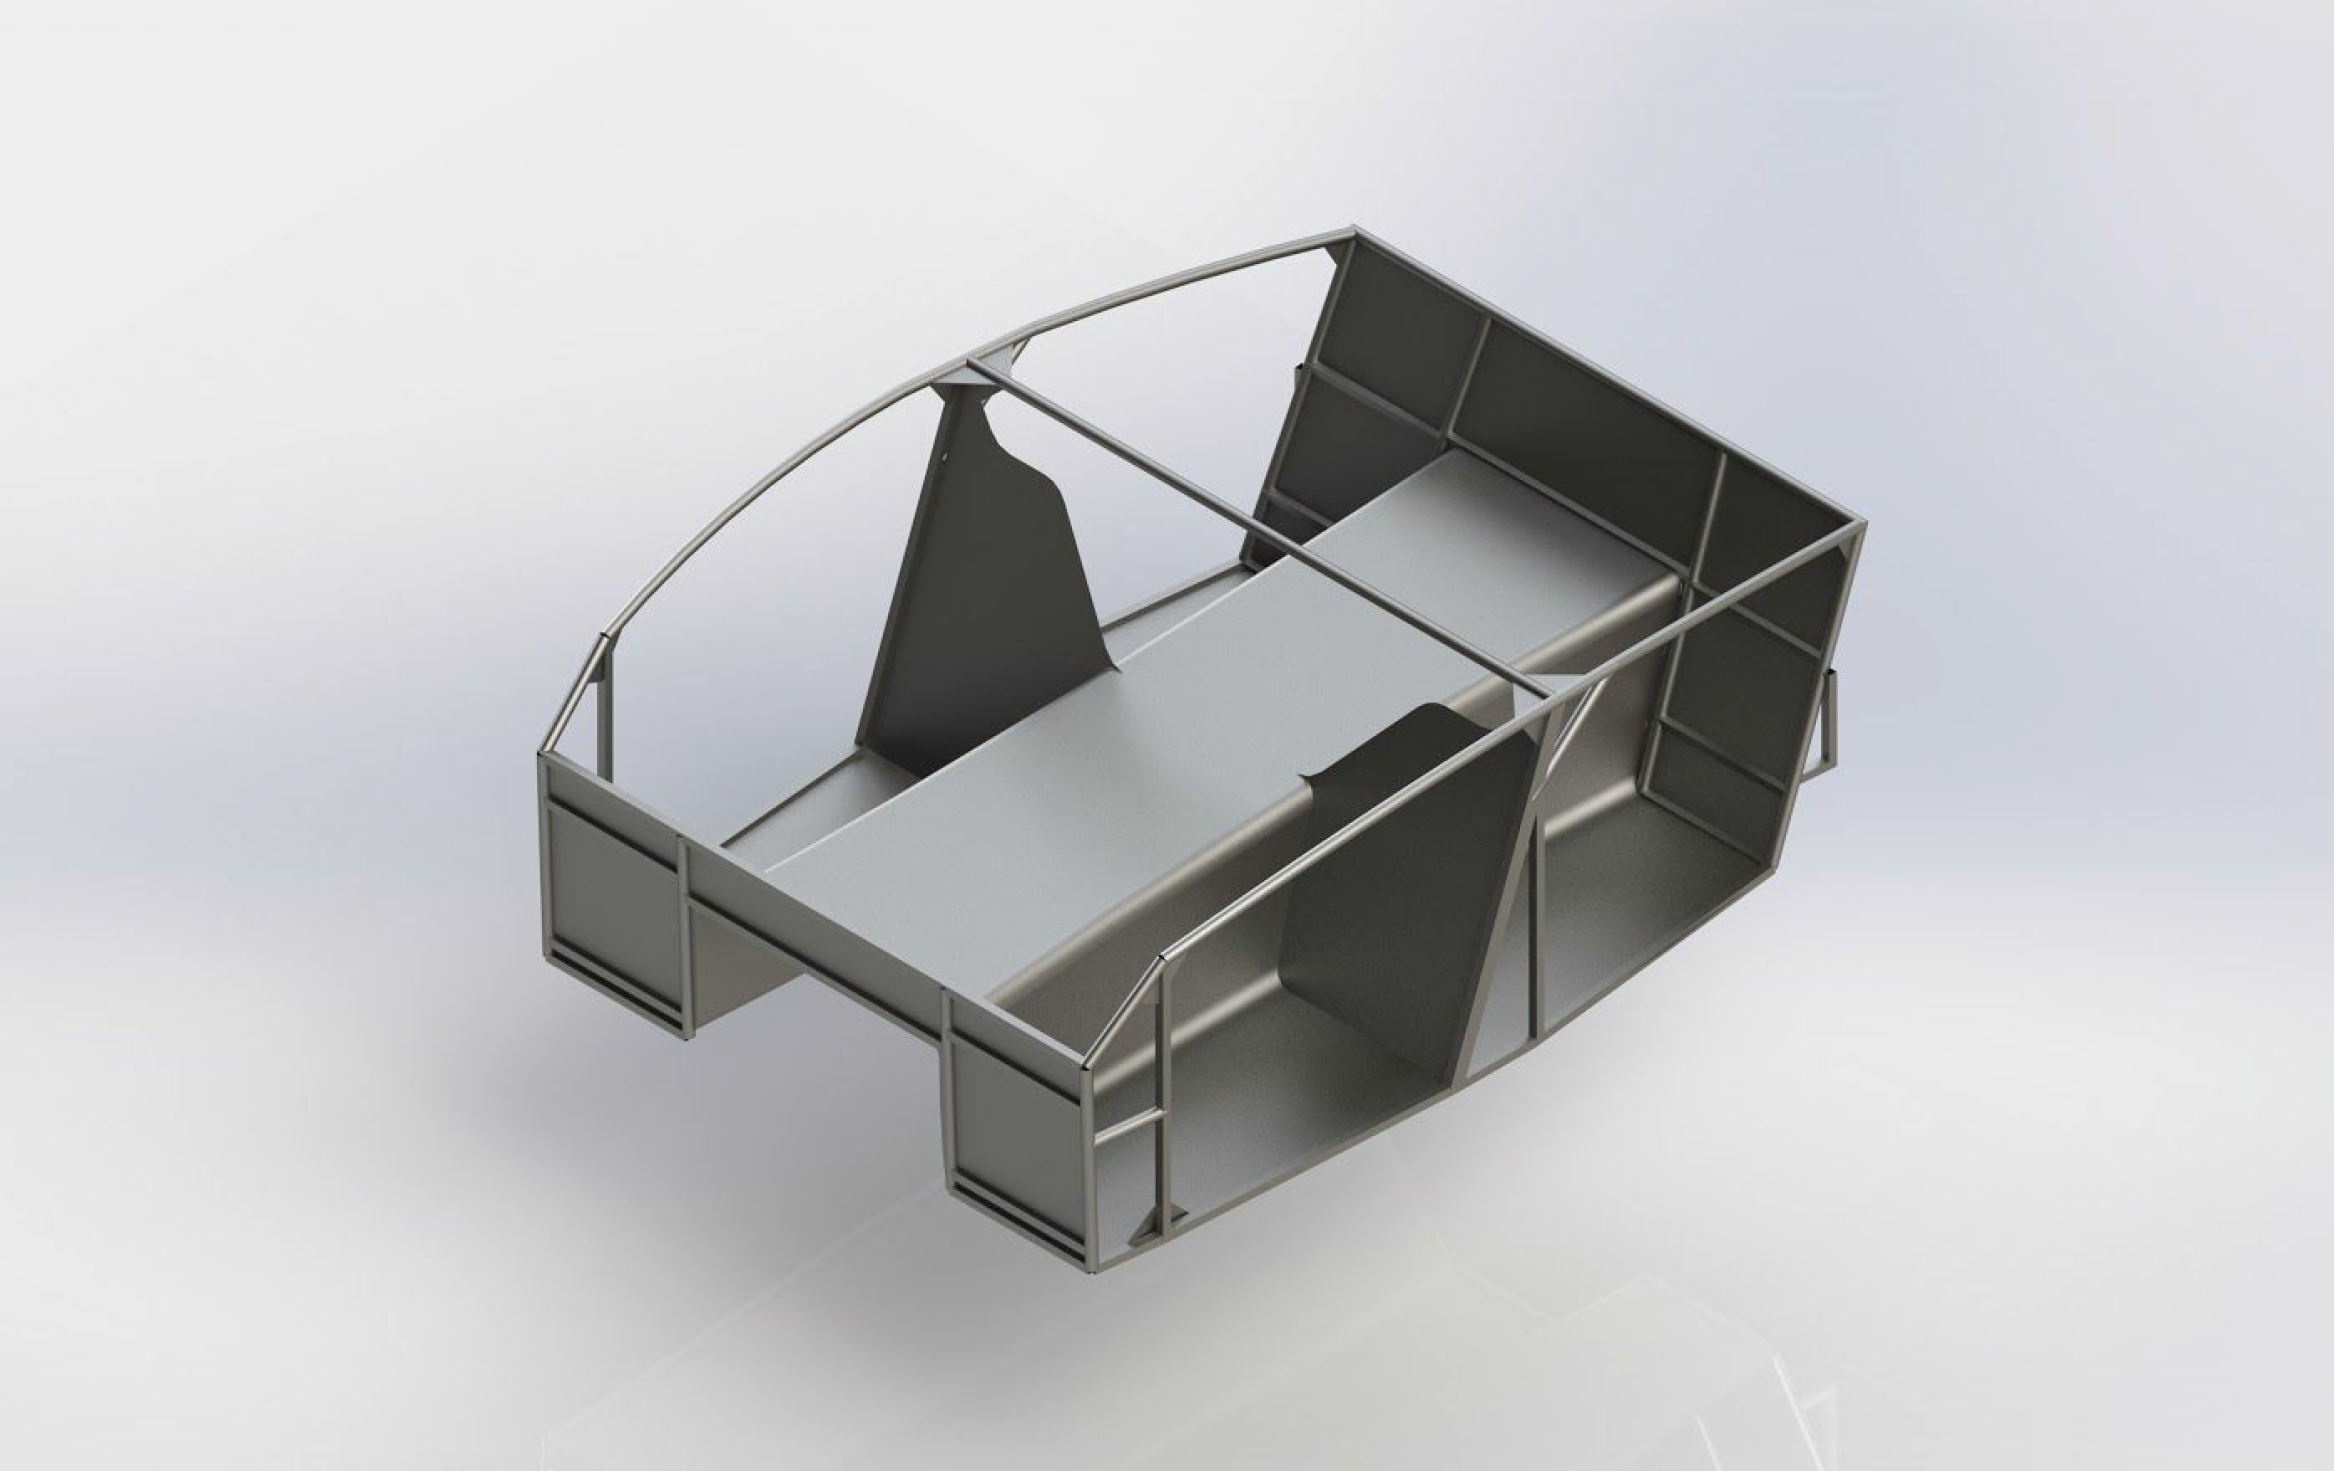 SolidWorks Chassis model